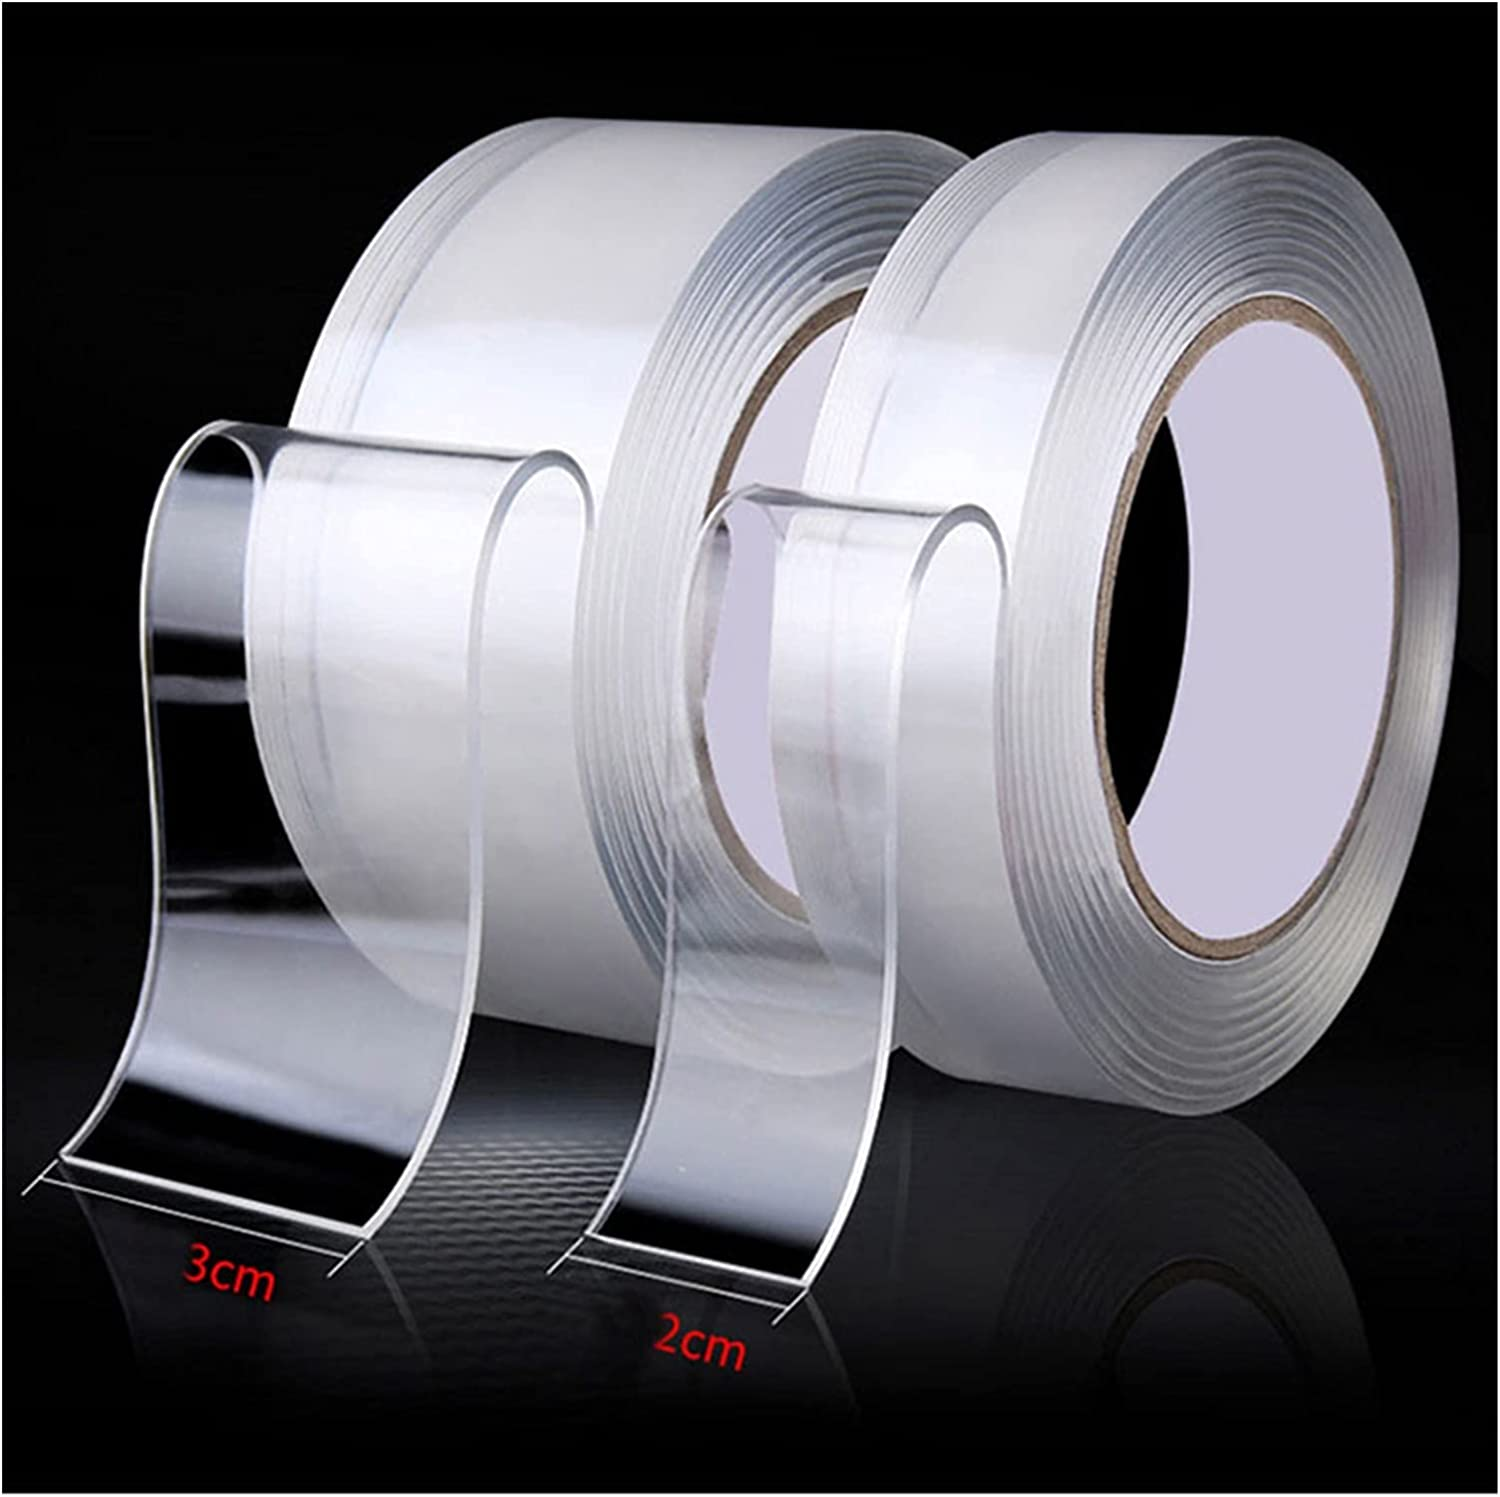 ZEMIN We OFFer All items free shipping at cheap prices 1 2 3 5M Nano Transparent Sided Reusable Tape Double